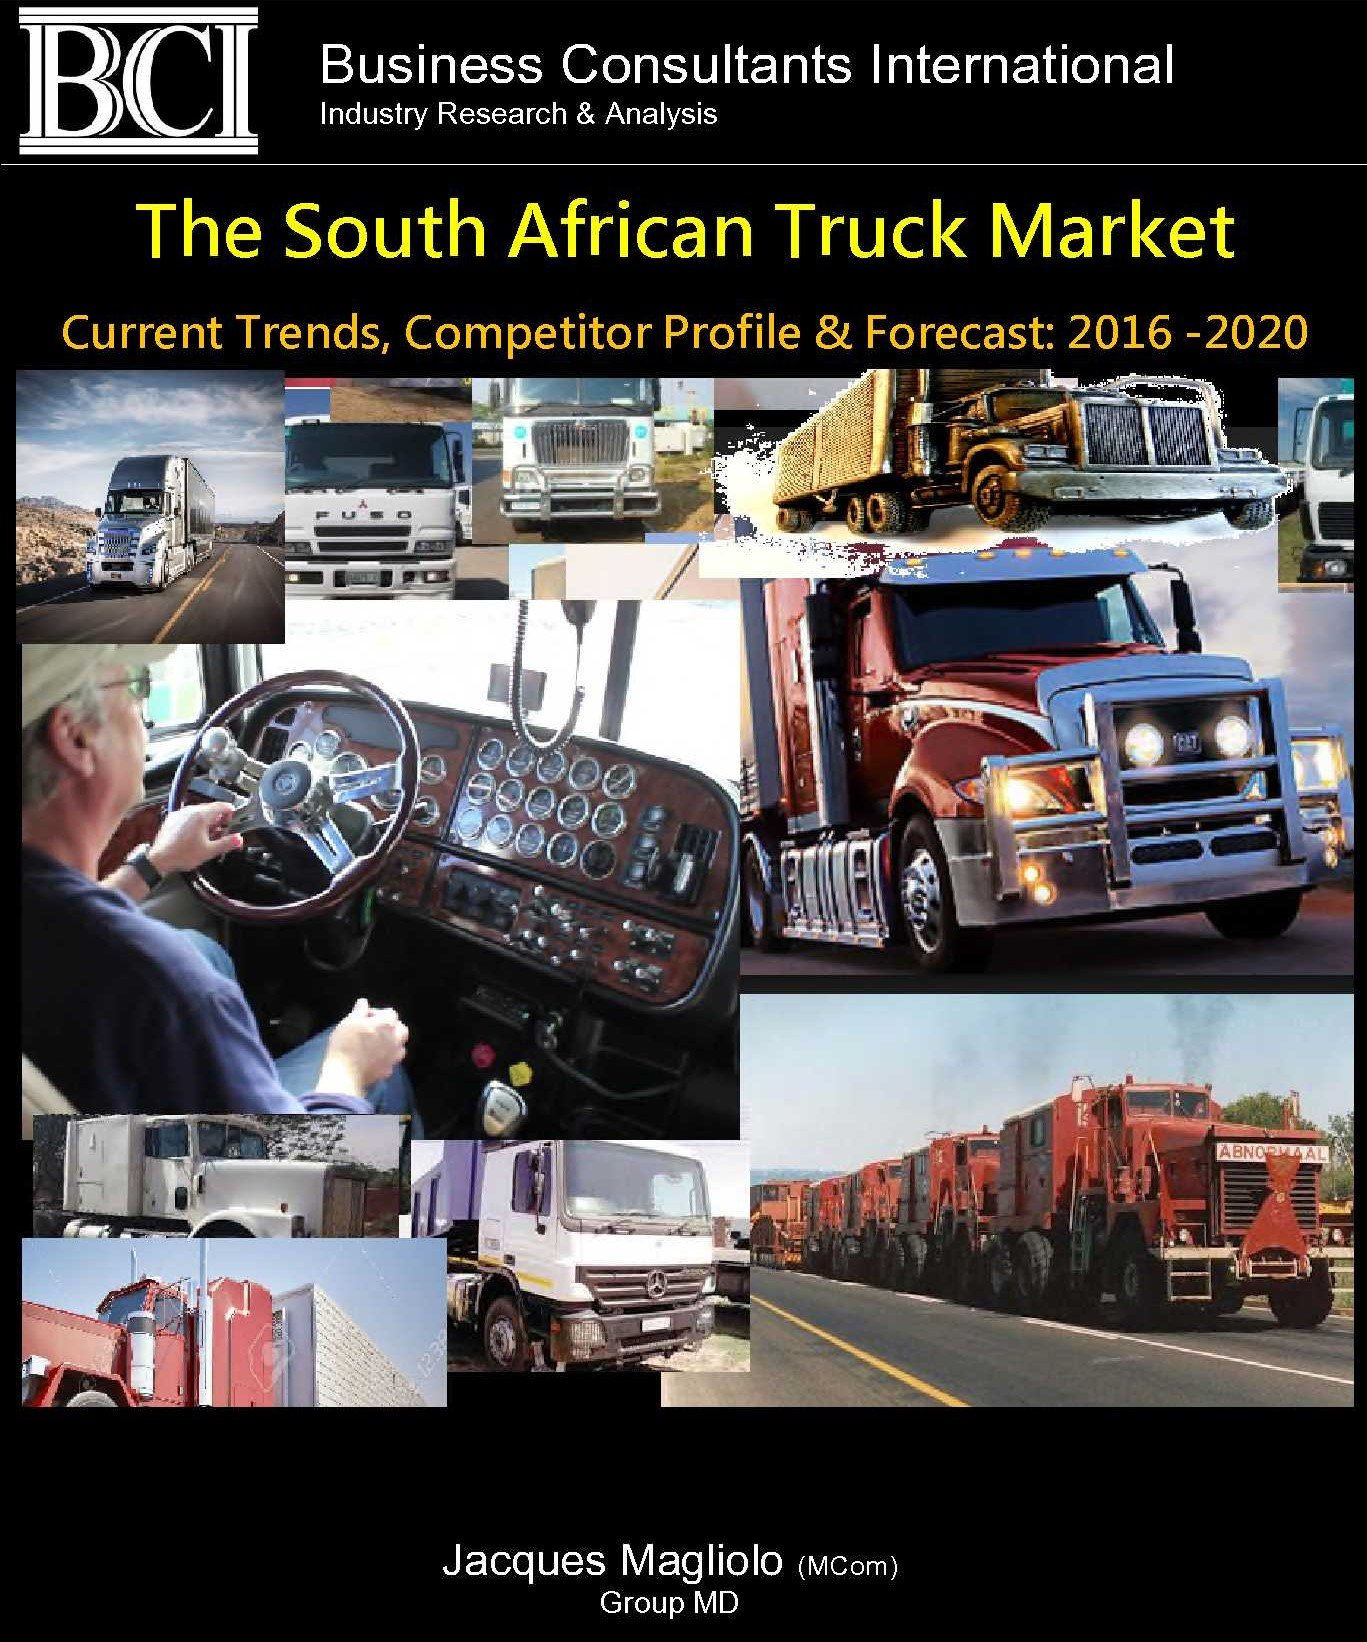 THE SOUTH AFRICAN TRUCK MARKET: Current Trends, Competitor Profile & Forecast: 2016 -2020